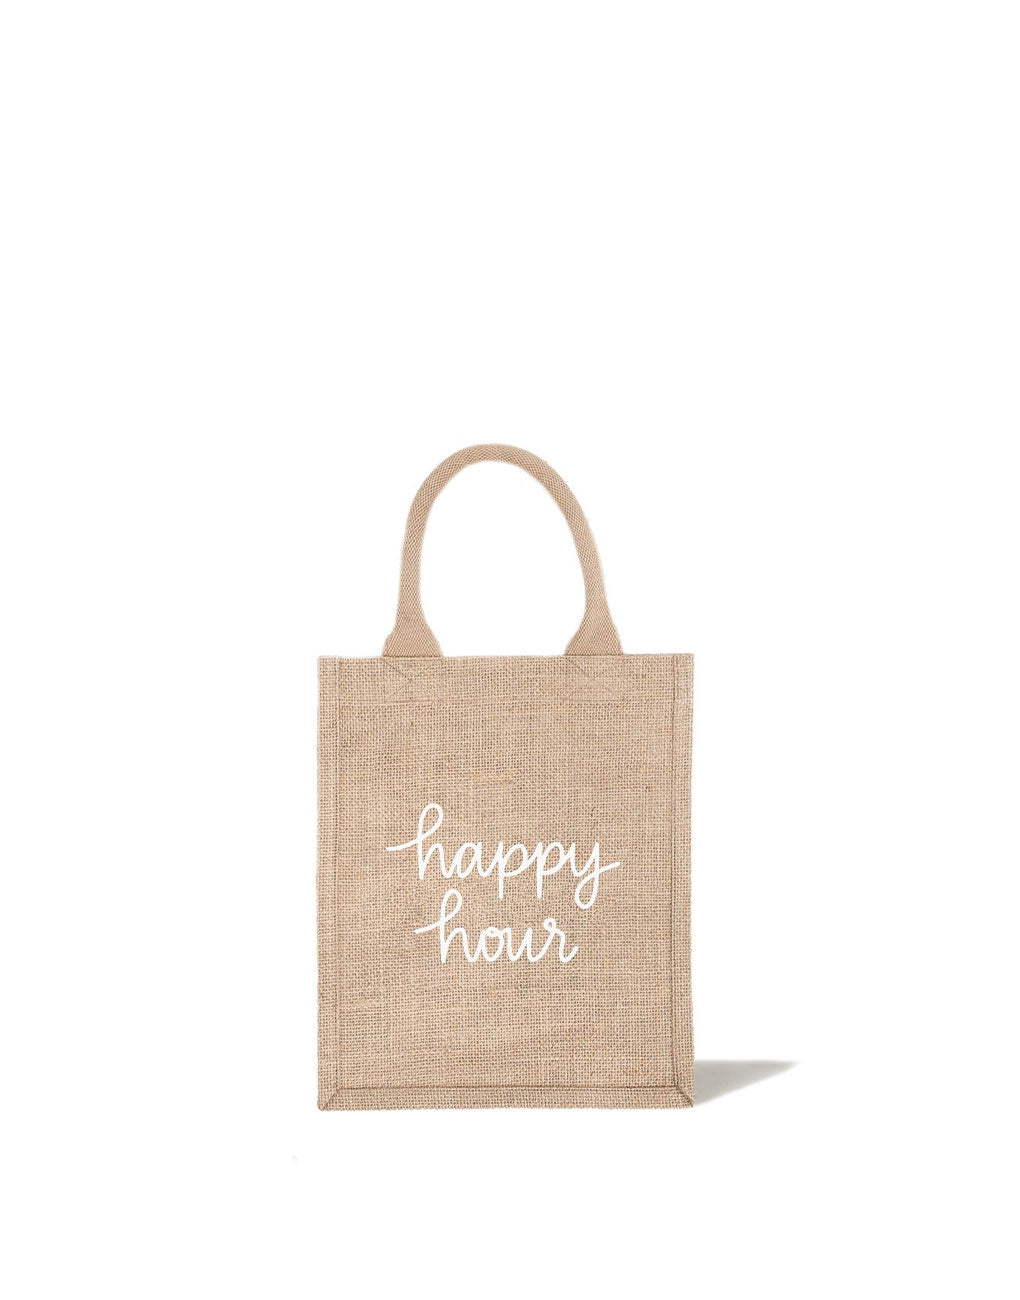 Medium Happy Hour Reusable Gift Tote In White Font | The Little Market